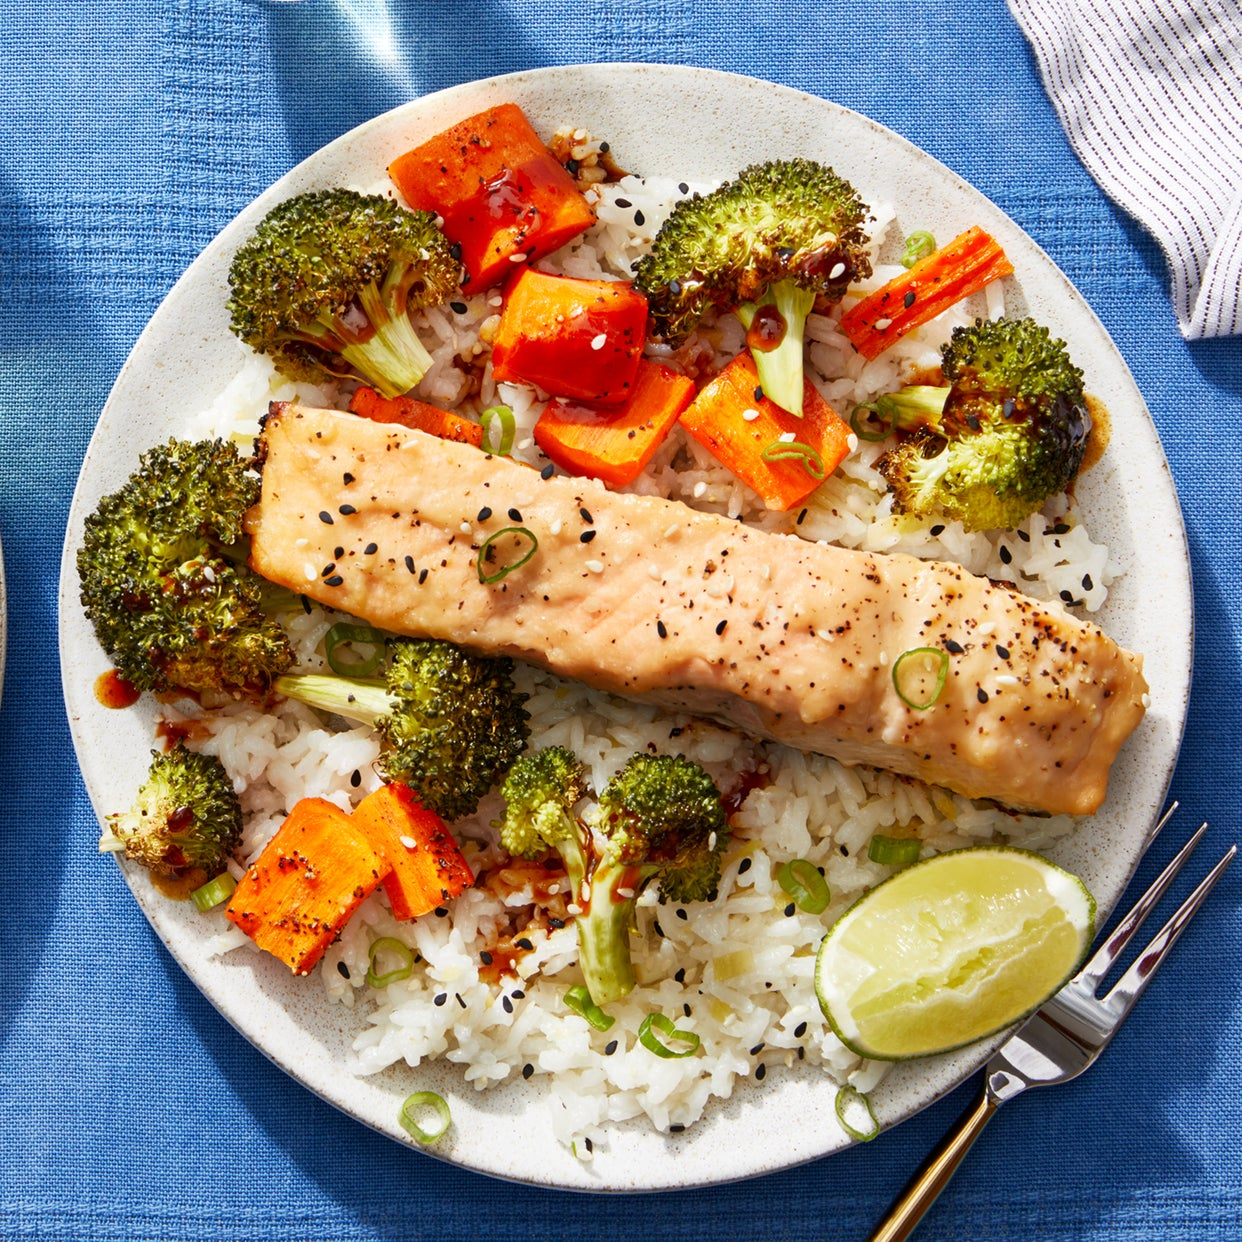 Miso-Glazed Salmon with Roasted Broccoli, Carrots, & Aromatic Rice